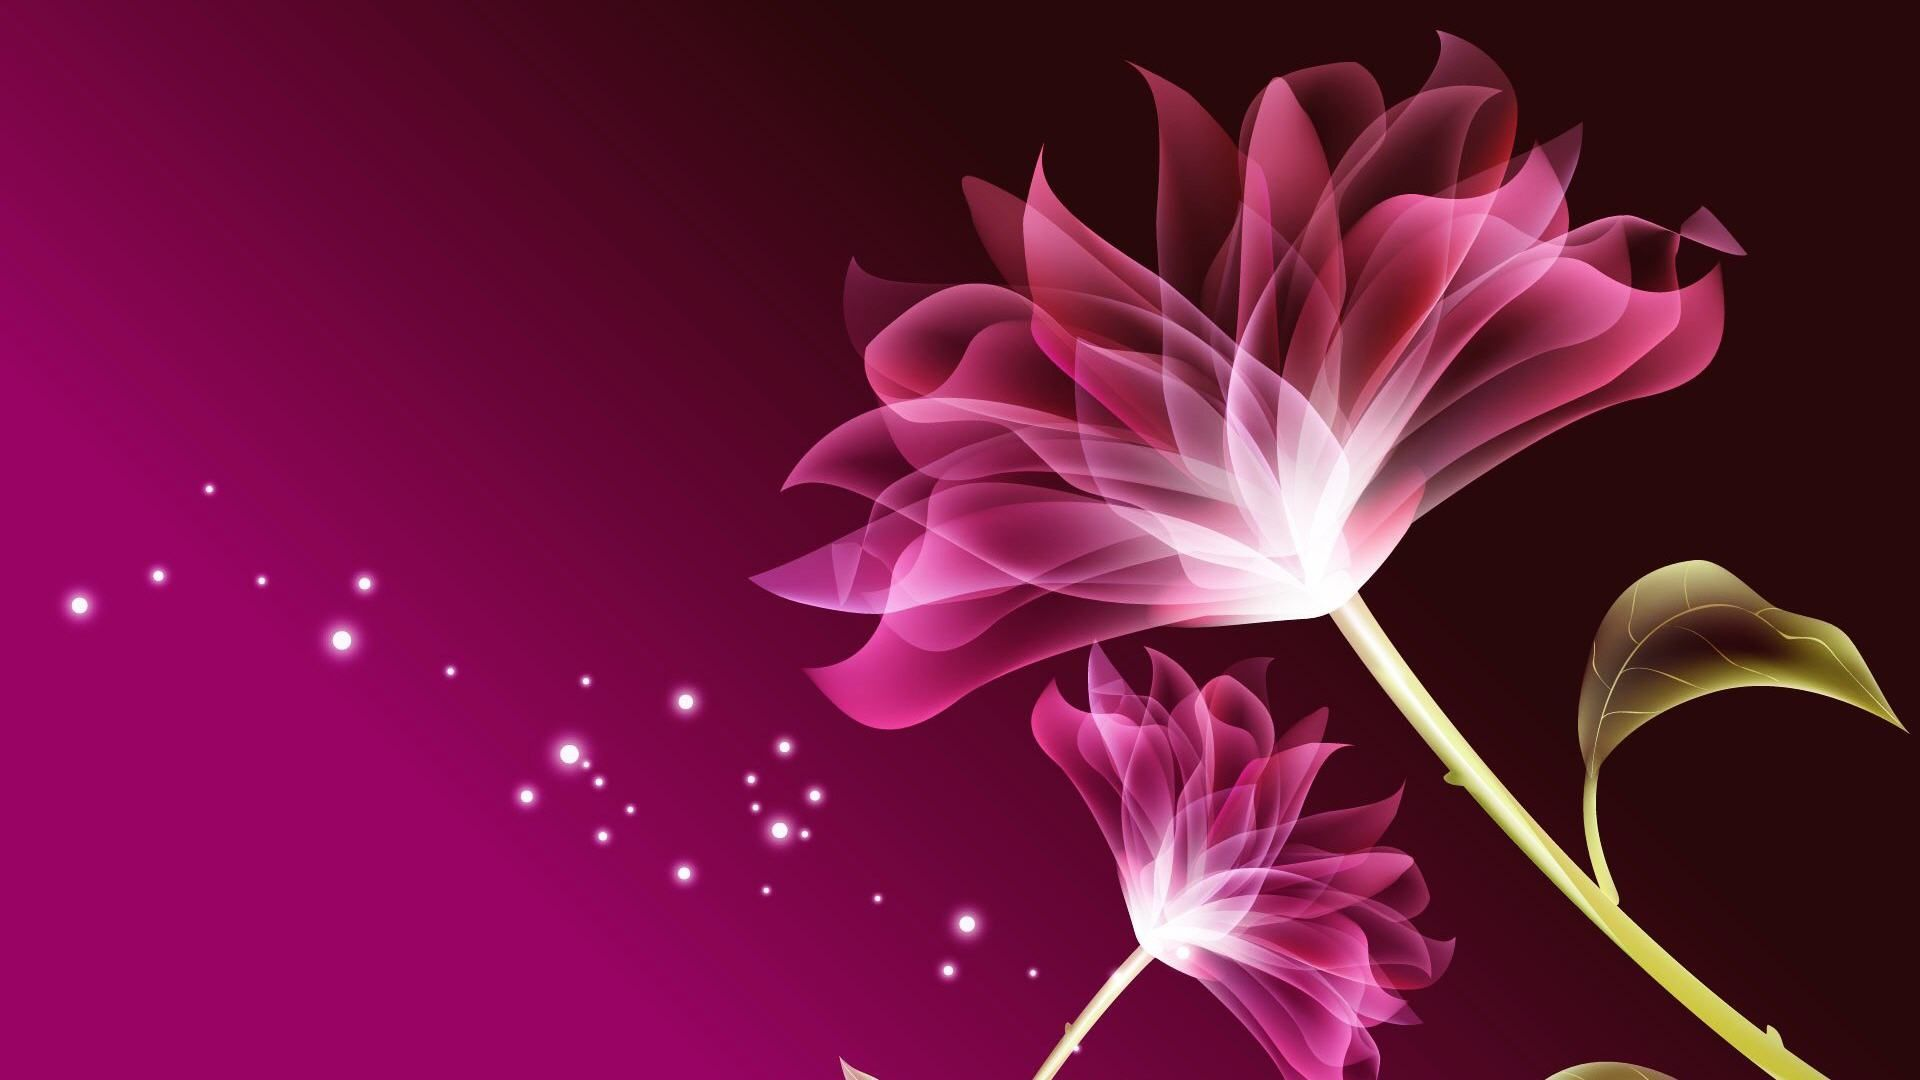 Beautiful Pictures Of Flowers Flower Wallpaper Beautiful Pink Art 2 Art Photos Prints